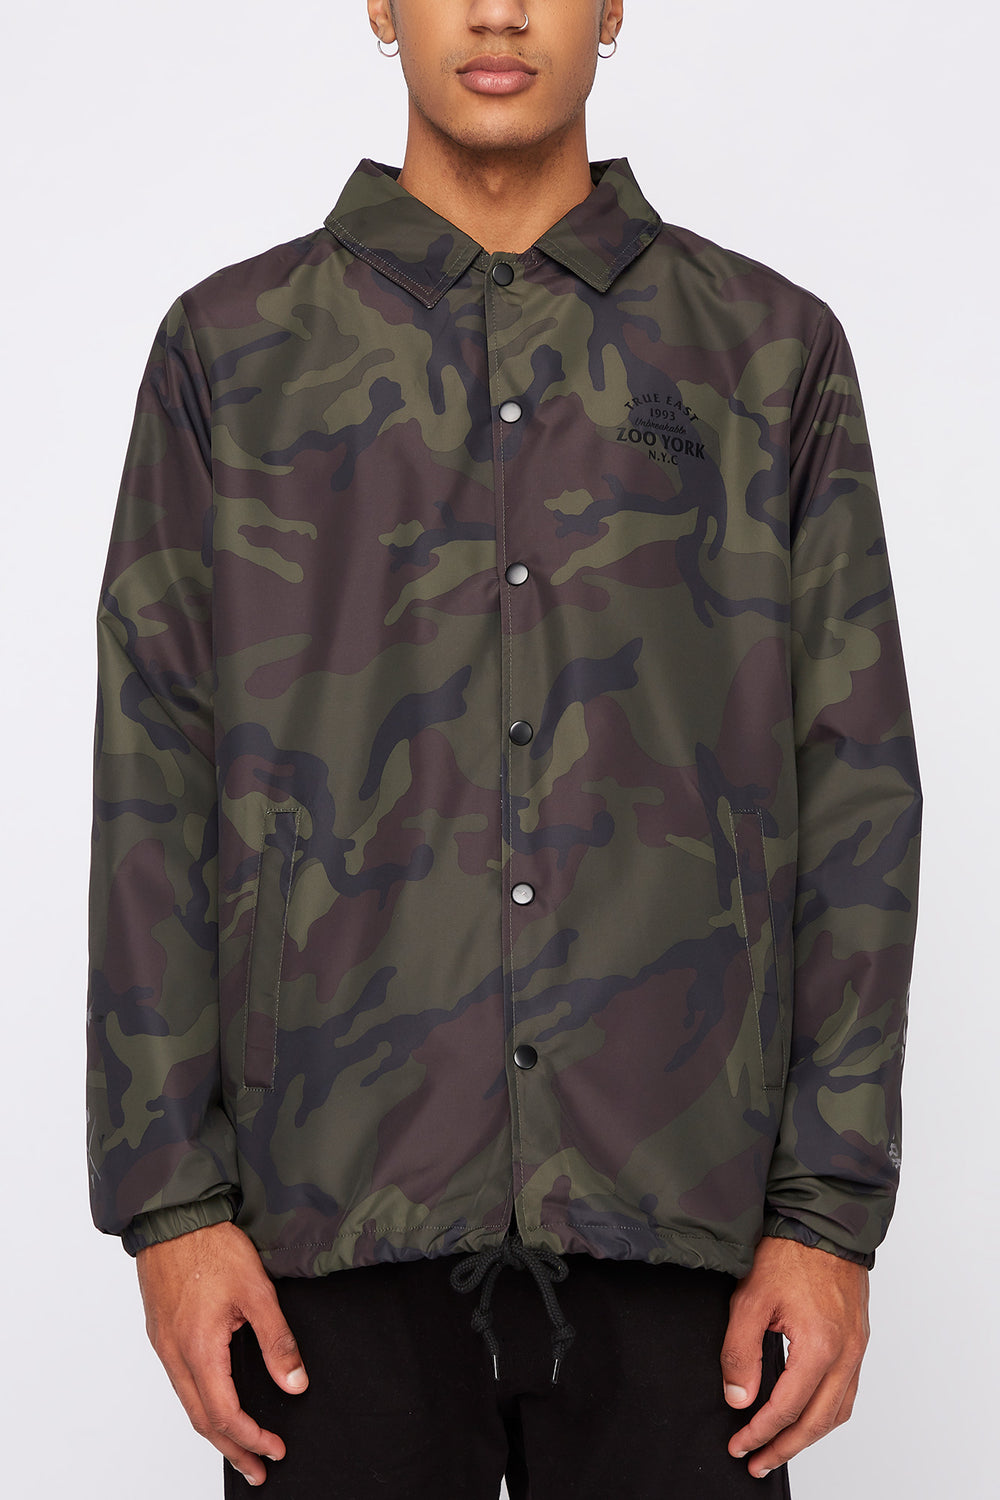 Manteau À Boutons-Pression Zoo York Homme Camoufle